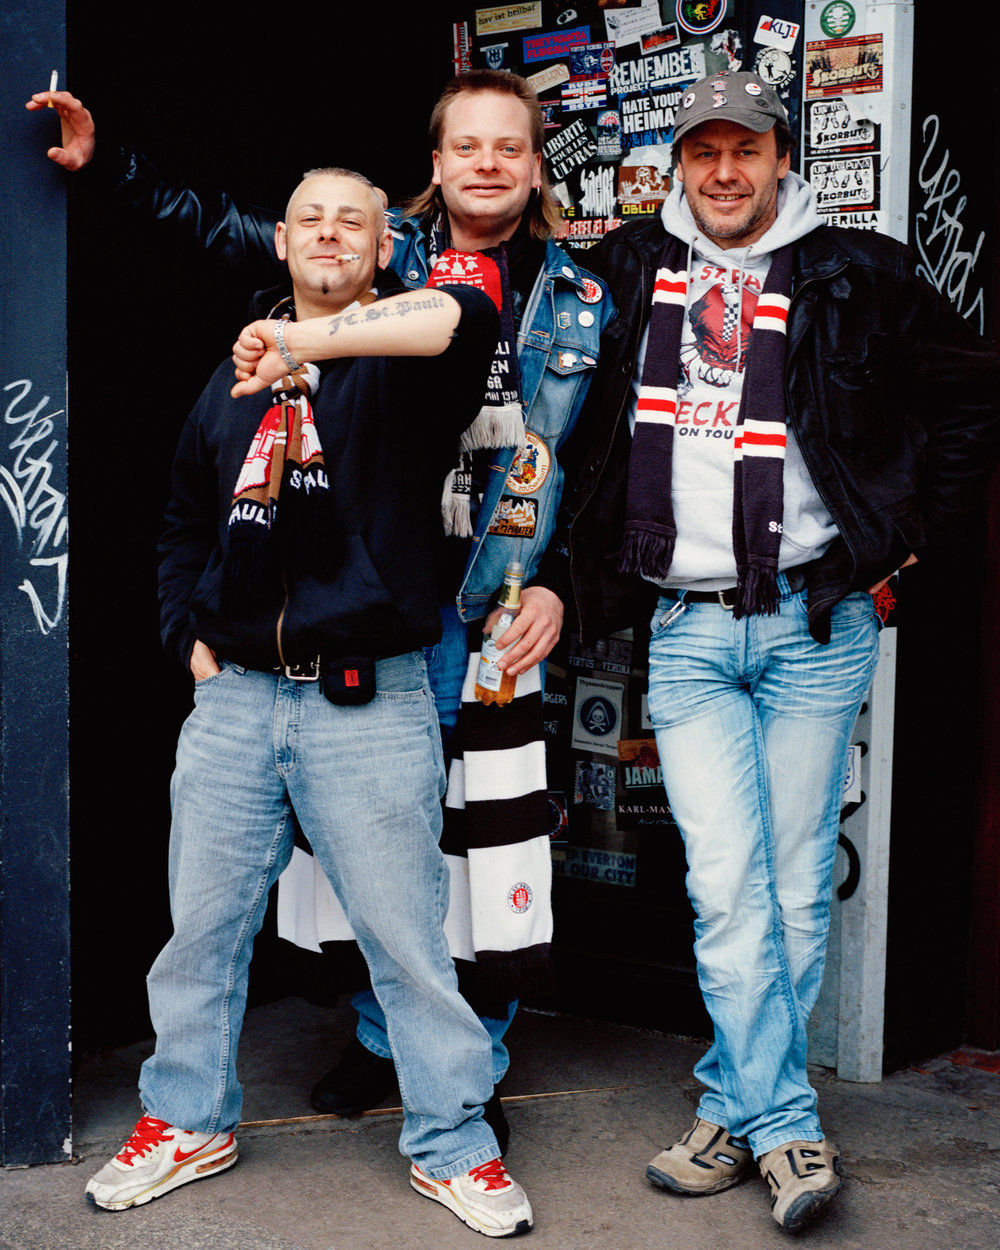 HAMBURG ST. PAULI SOCCER & NEIGHBORHOOD//ARKITIP